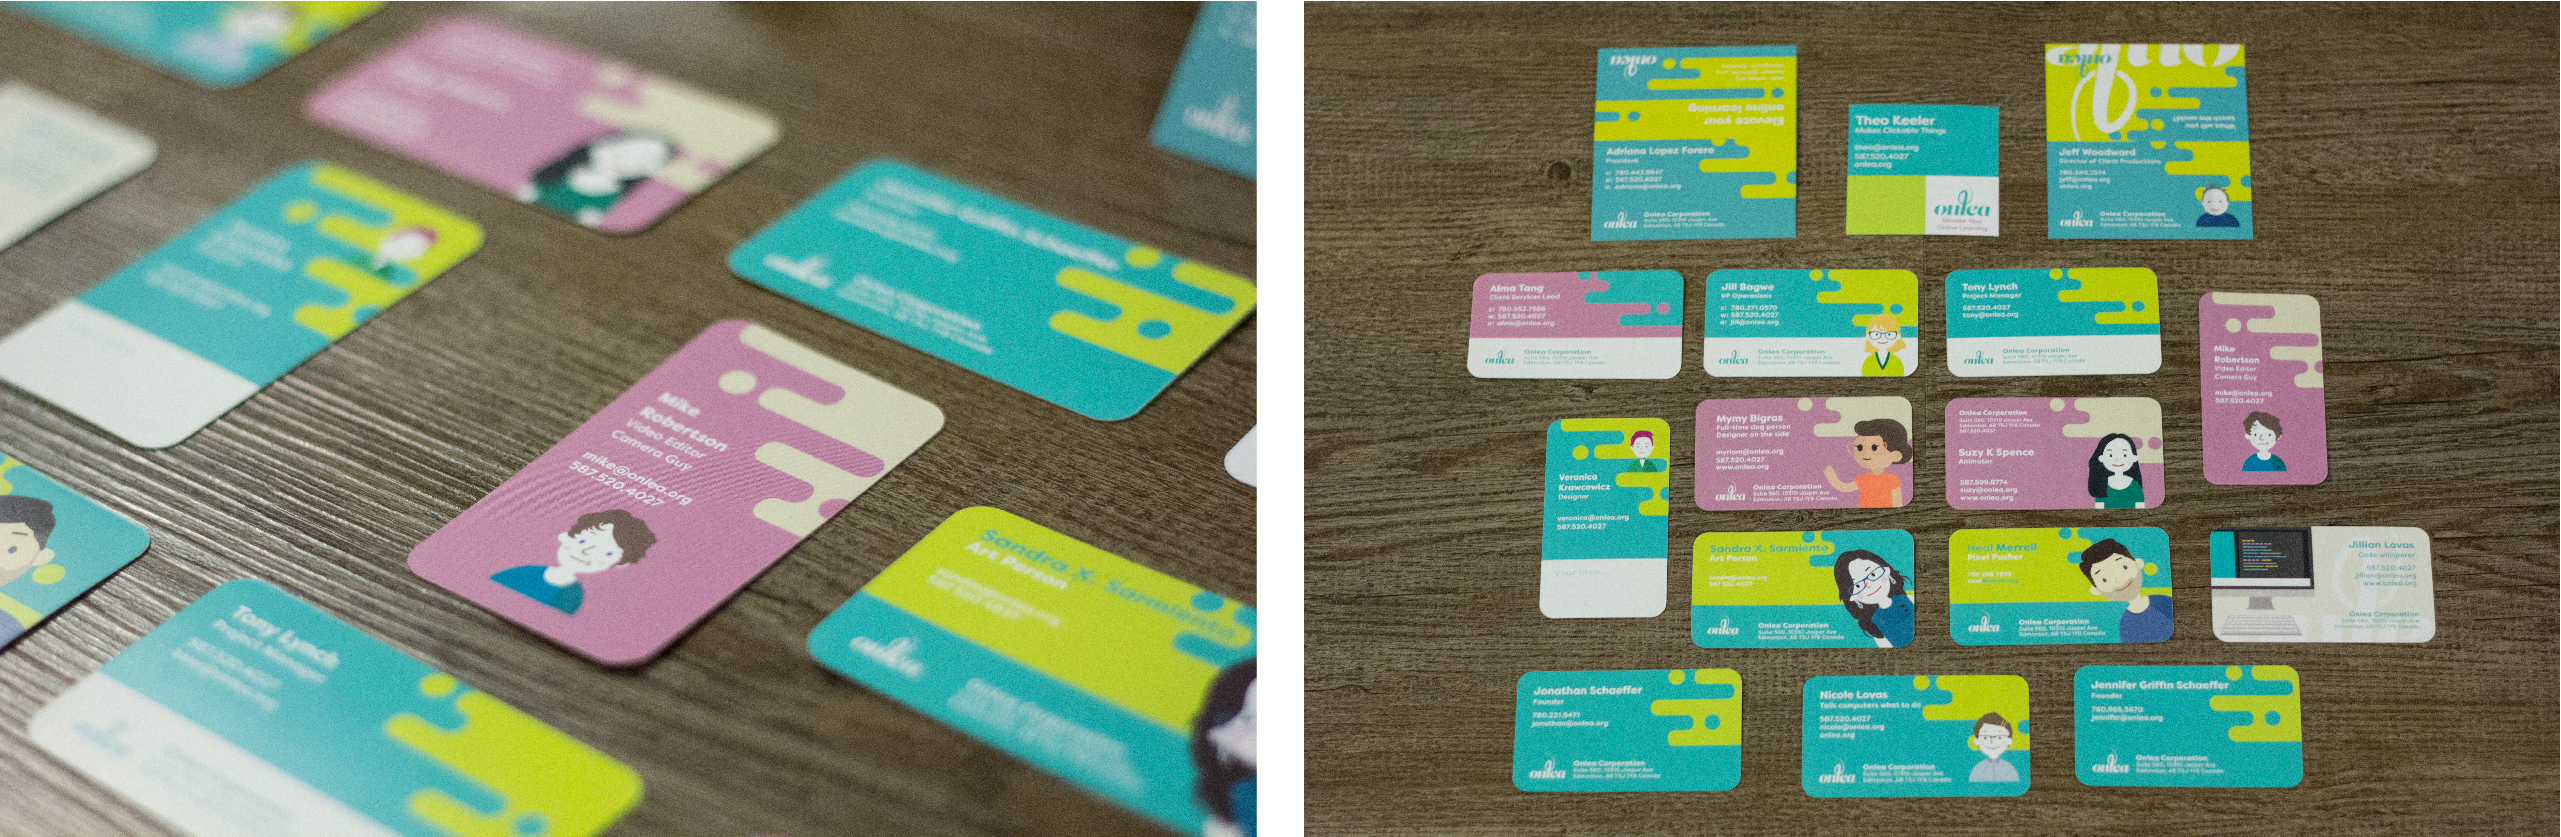 Onlea - Business Cards as Unique as our Team Members